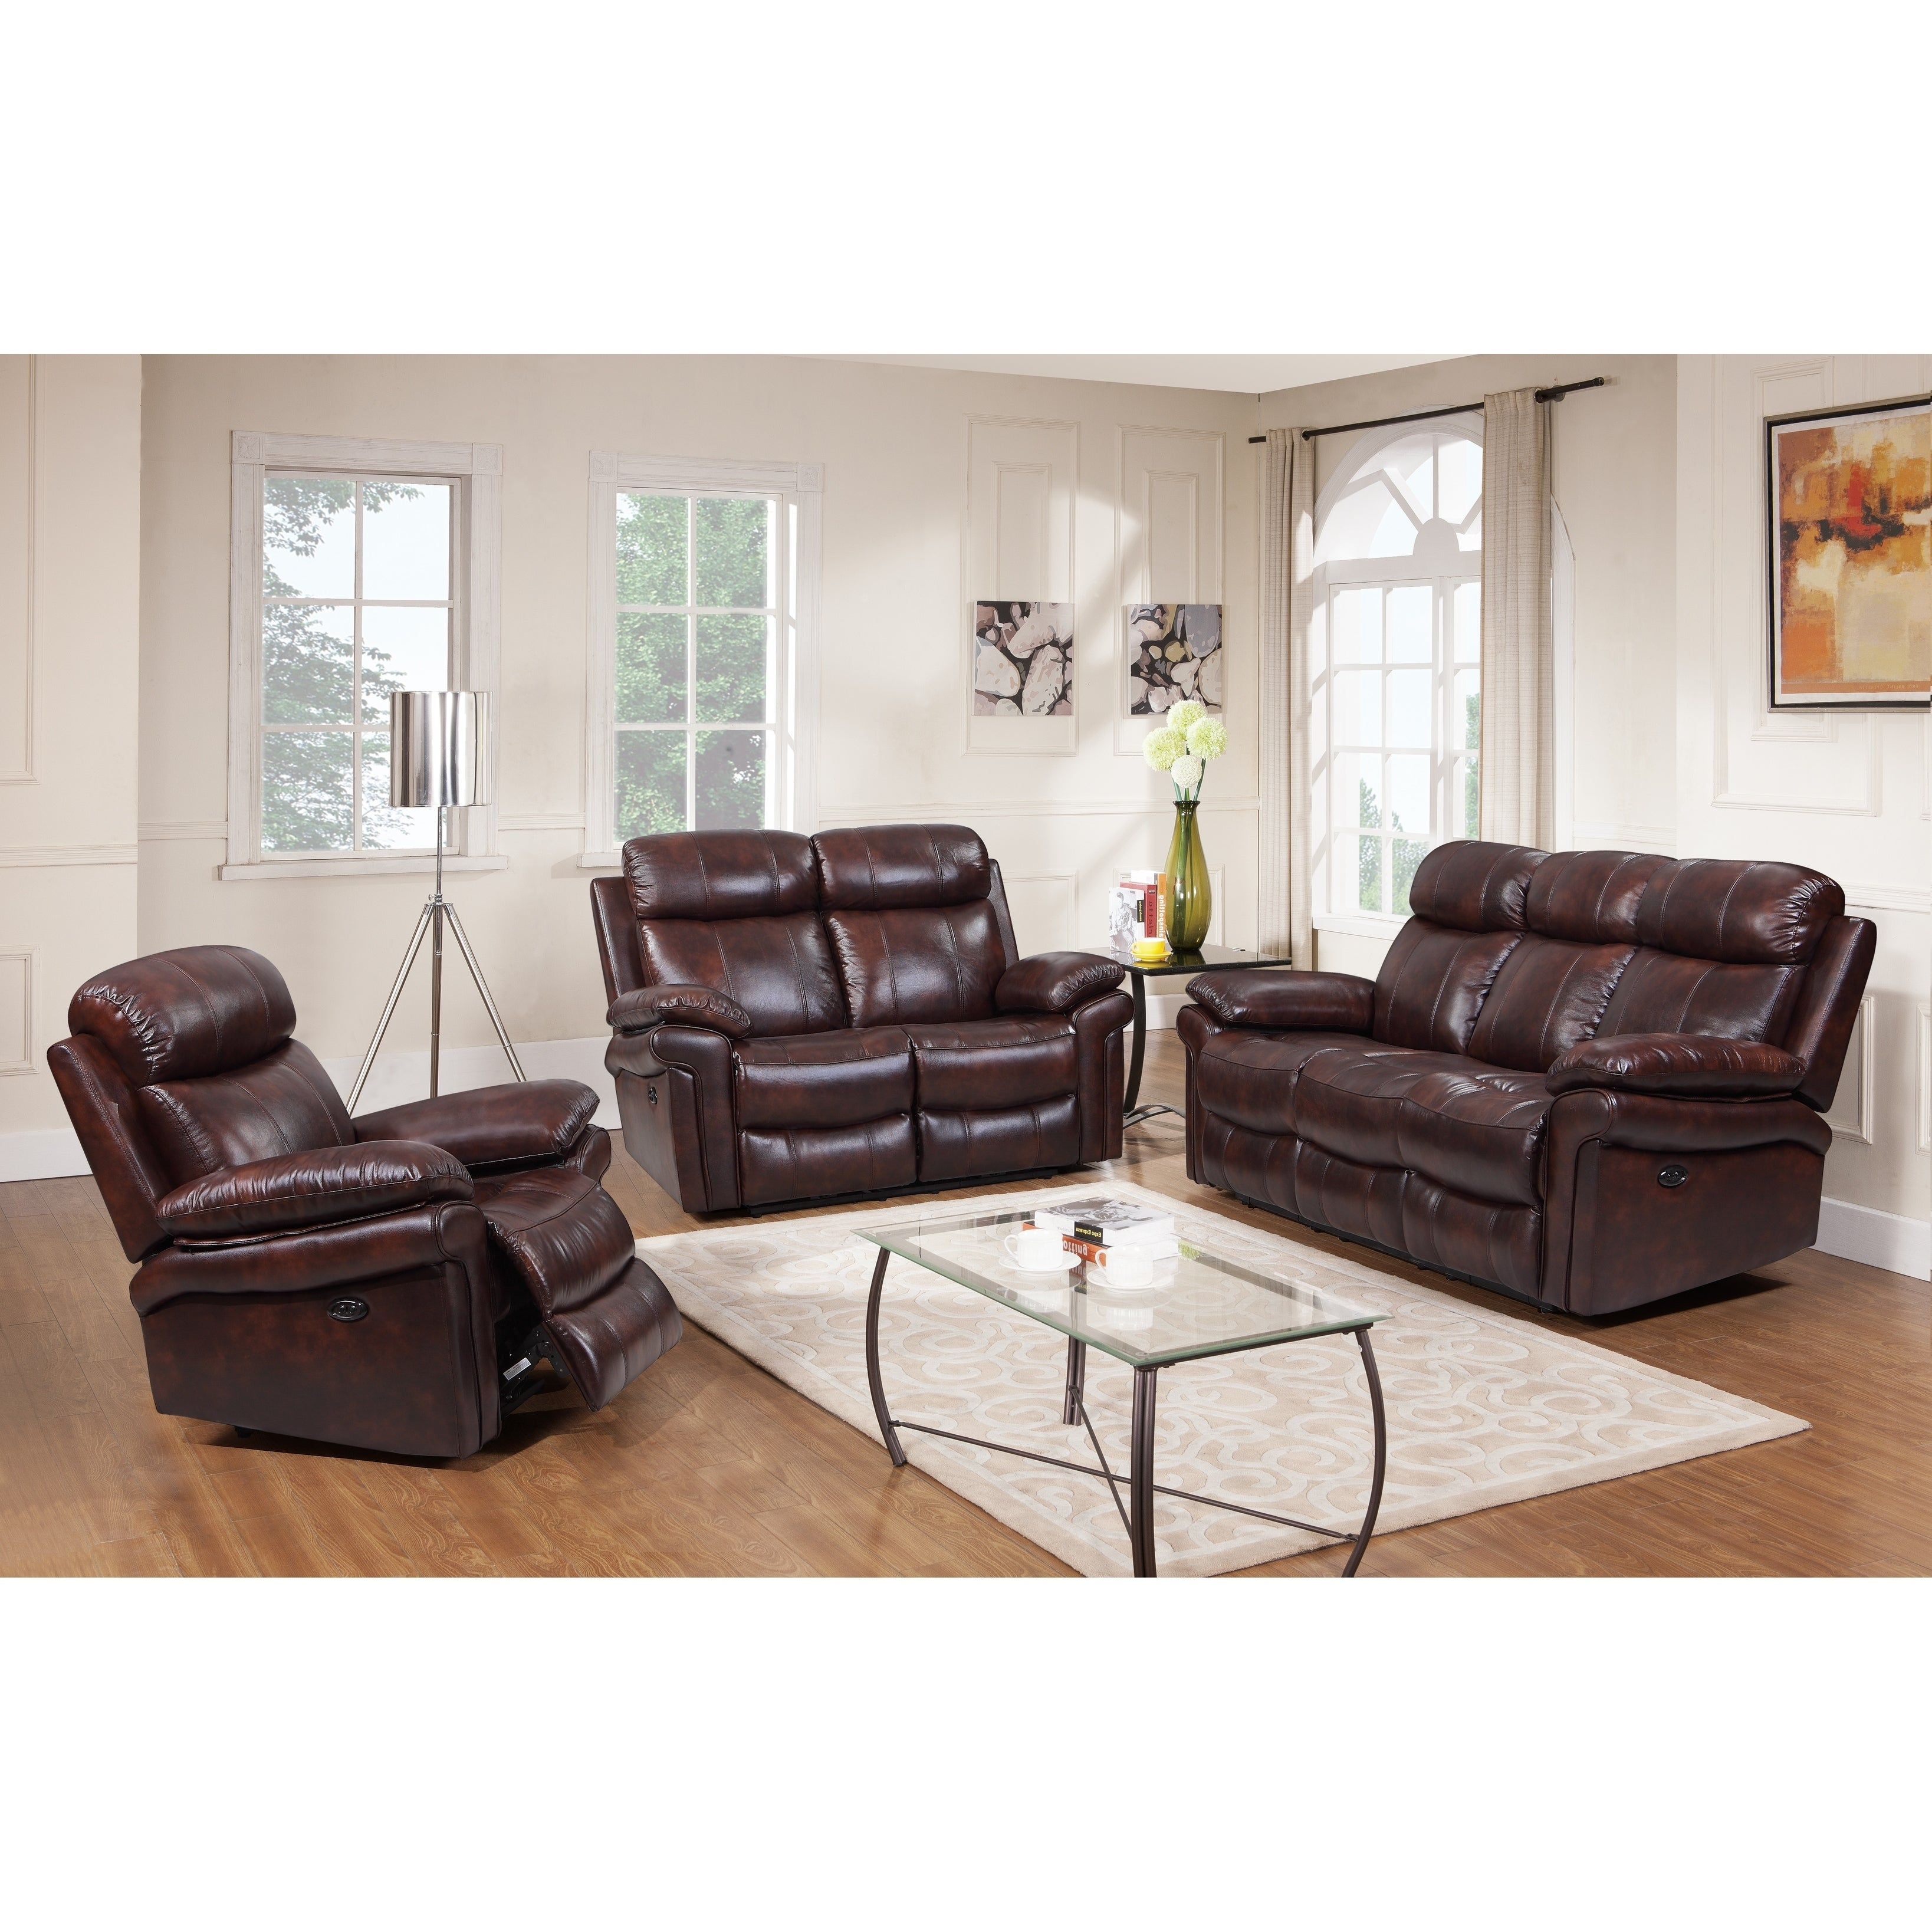 Hudson Top Grain Leather Power Reclining Living Room Set Brown Blue Red